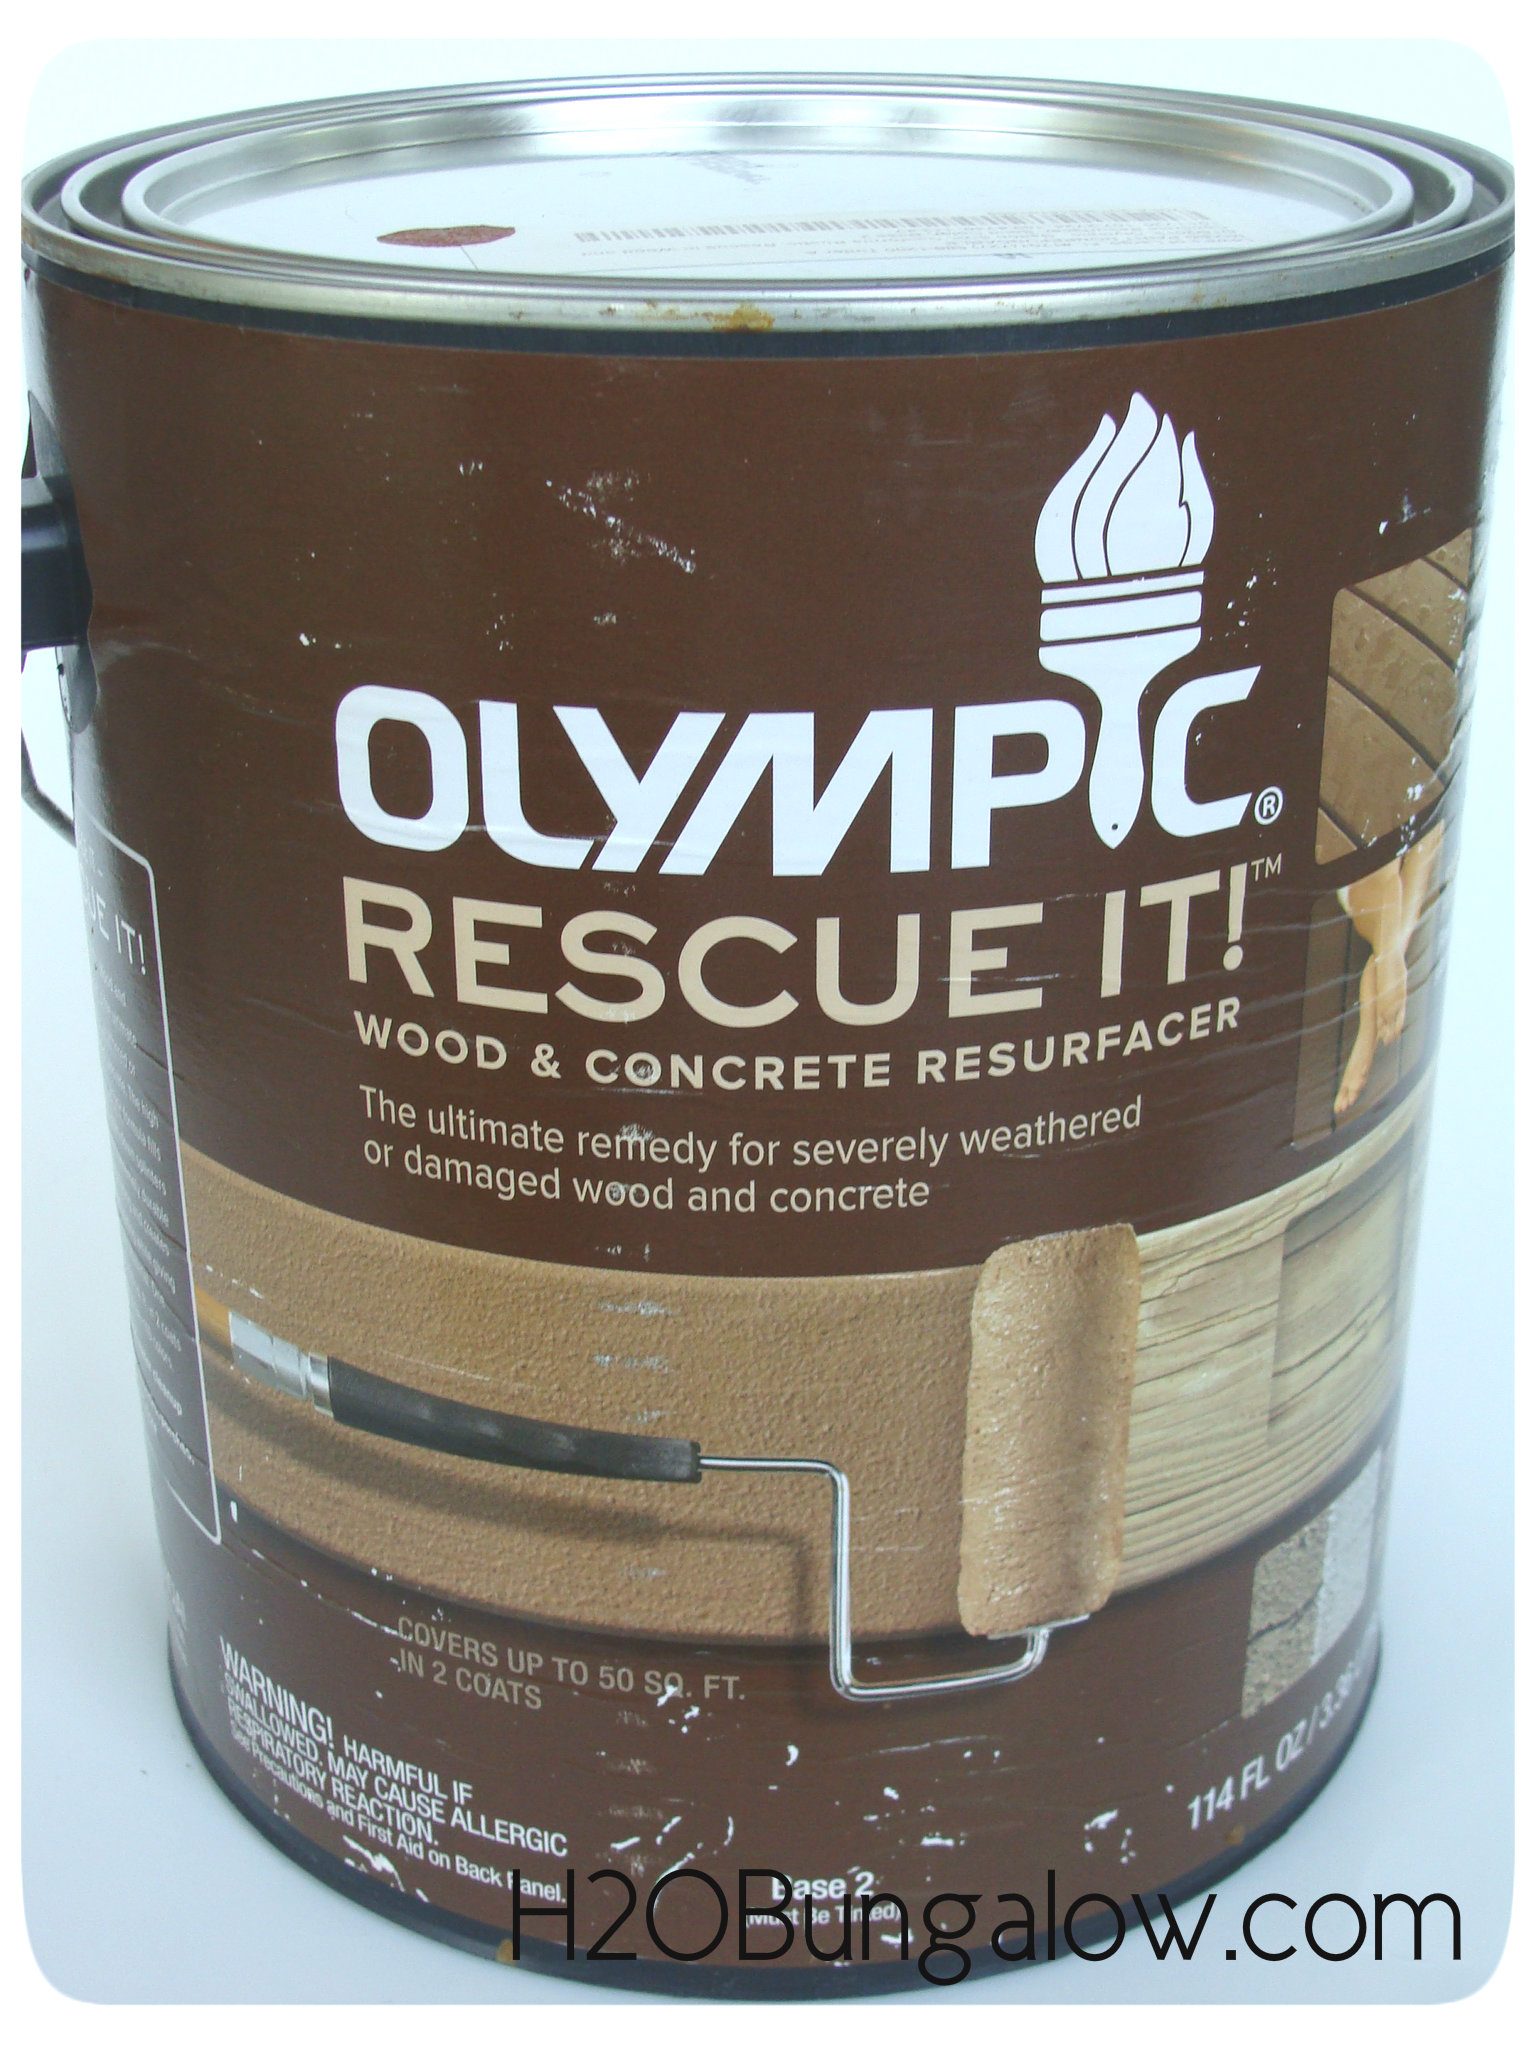 Refinish a wood deck in a day h20bungalow olympic rescue it concrete and wood resurfacer review baanklon Choice Image